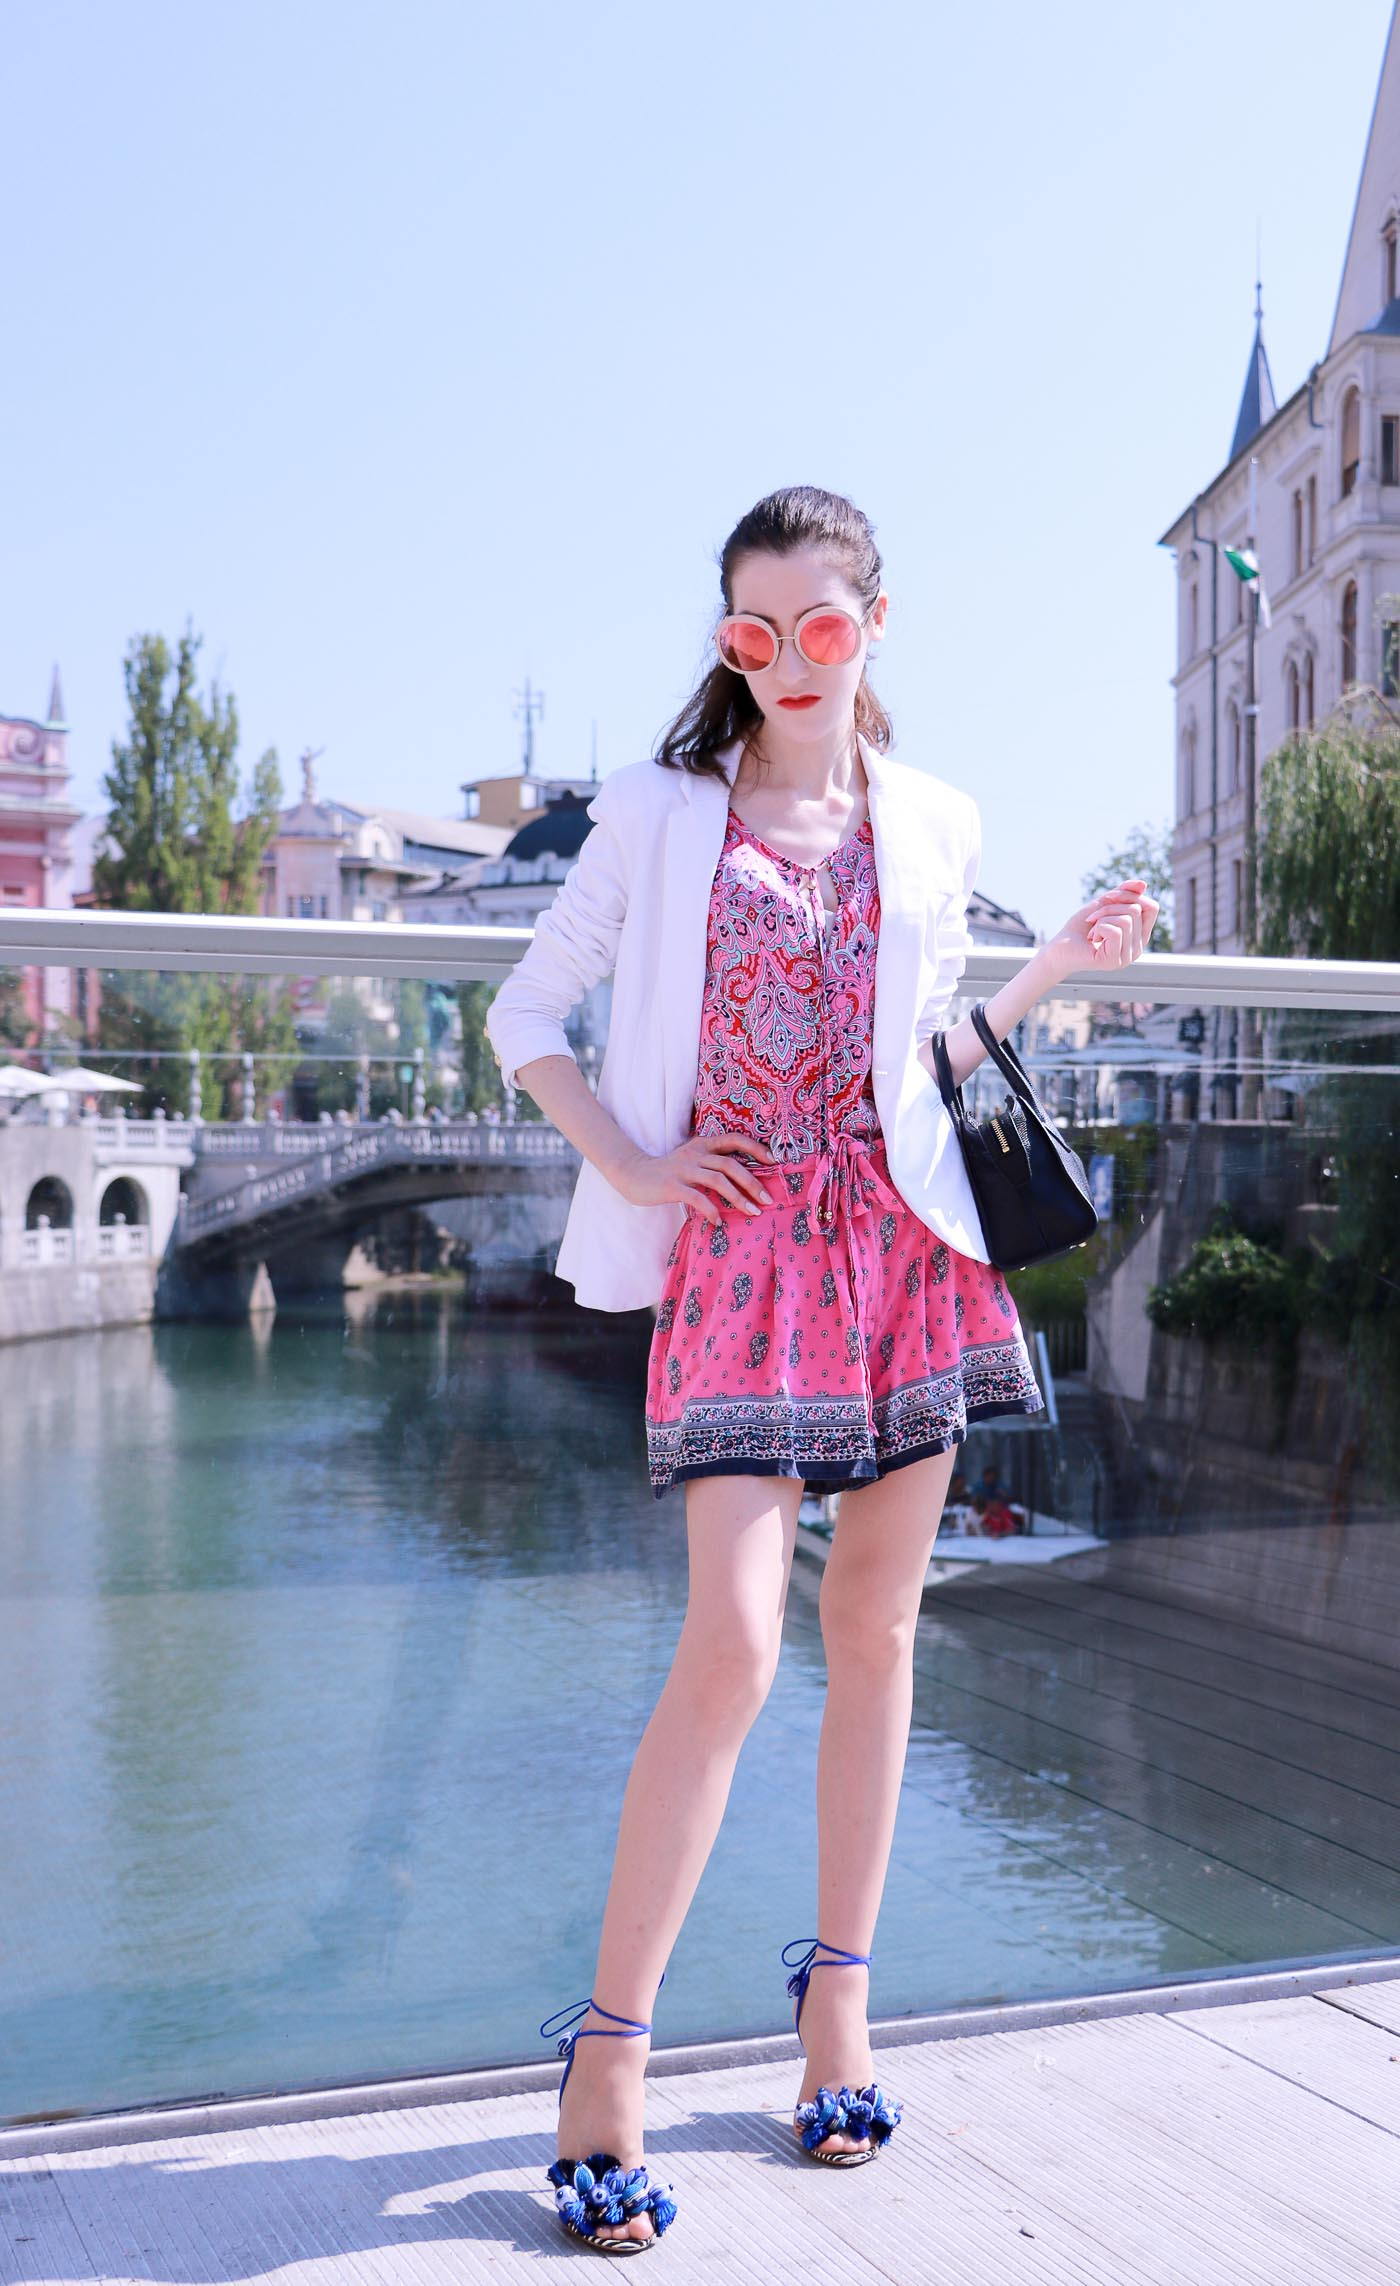 Fashion Blogger Veronika Lipar of Brunette from Wall Street wearing round pink sunglasses from Sunday Somewhere, printed pink silk shorts, printed top, white blazer, blue aquazzura sctrappy sandals, small black bag and a sleek ponytail while standing on the bridge and looking the city